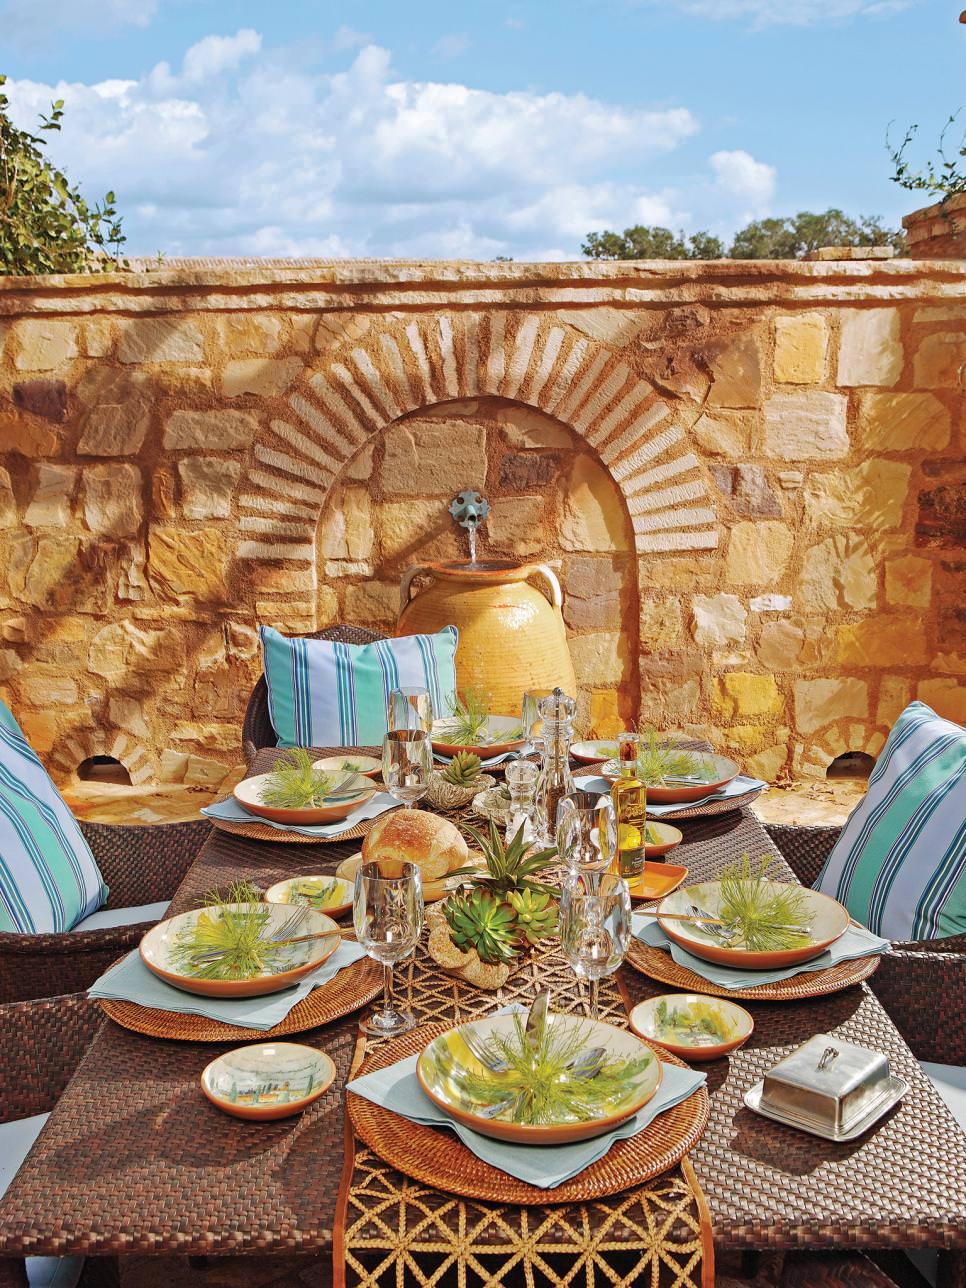 Restaurant Outdoor Decoration : Wall decor designs ideas for dining room design